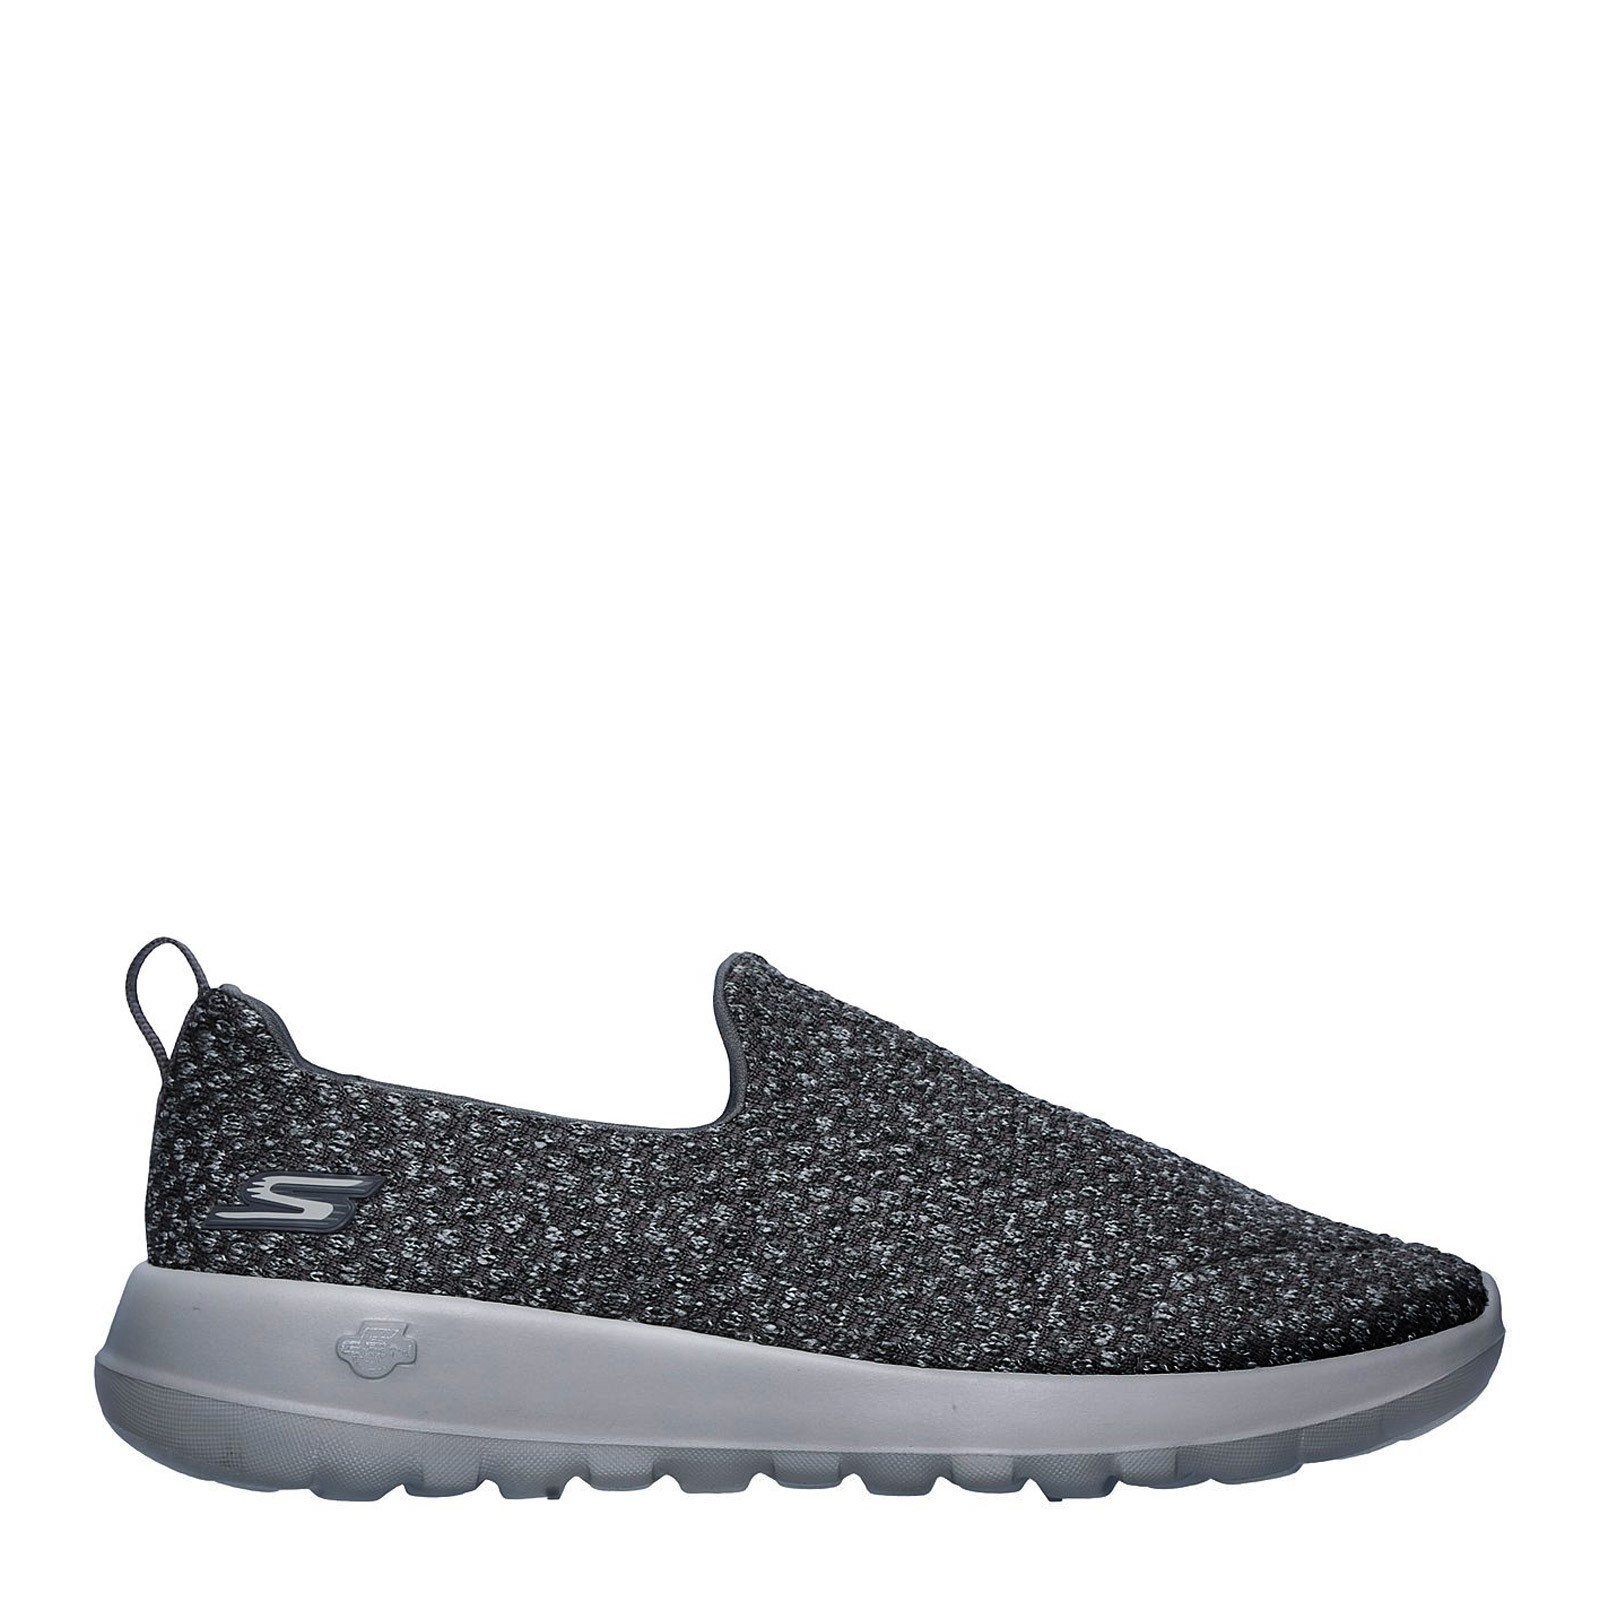 Men's Skechers, GOwalk Max - Soothe